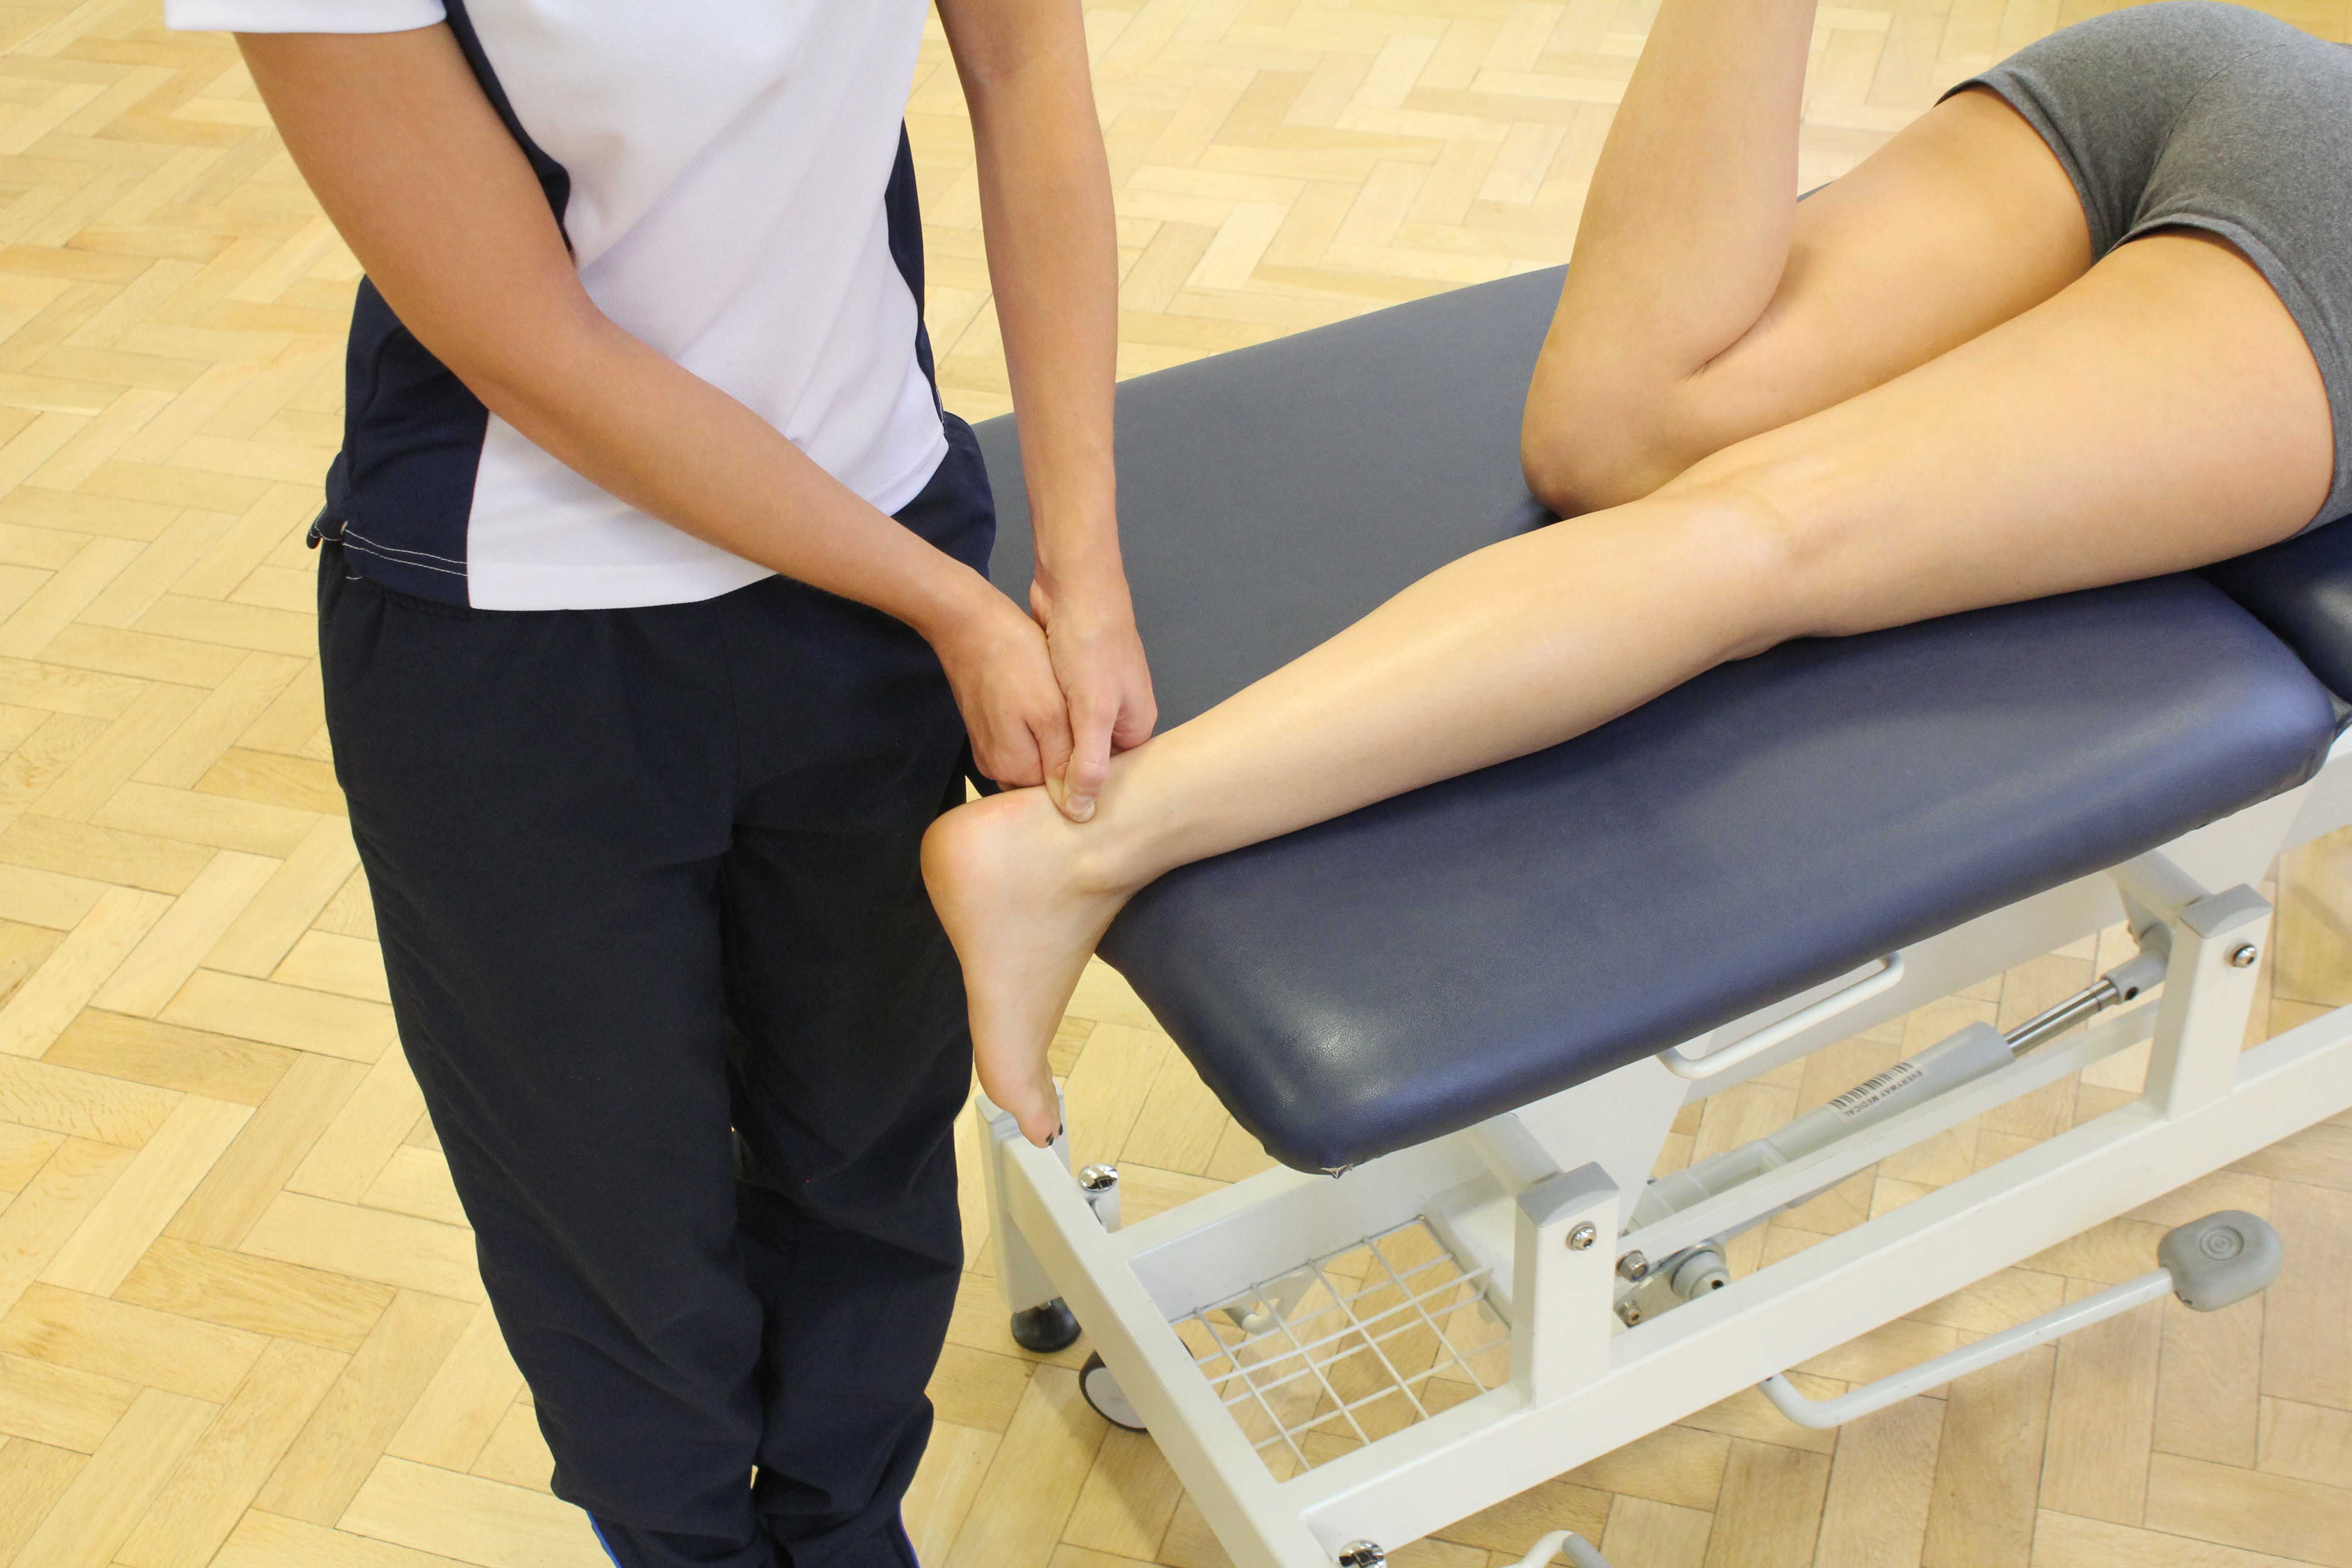 Transverse friction massage to achilles tendon